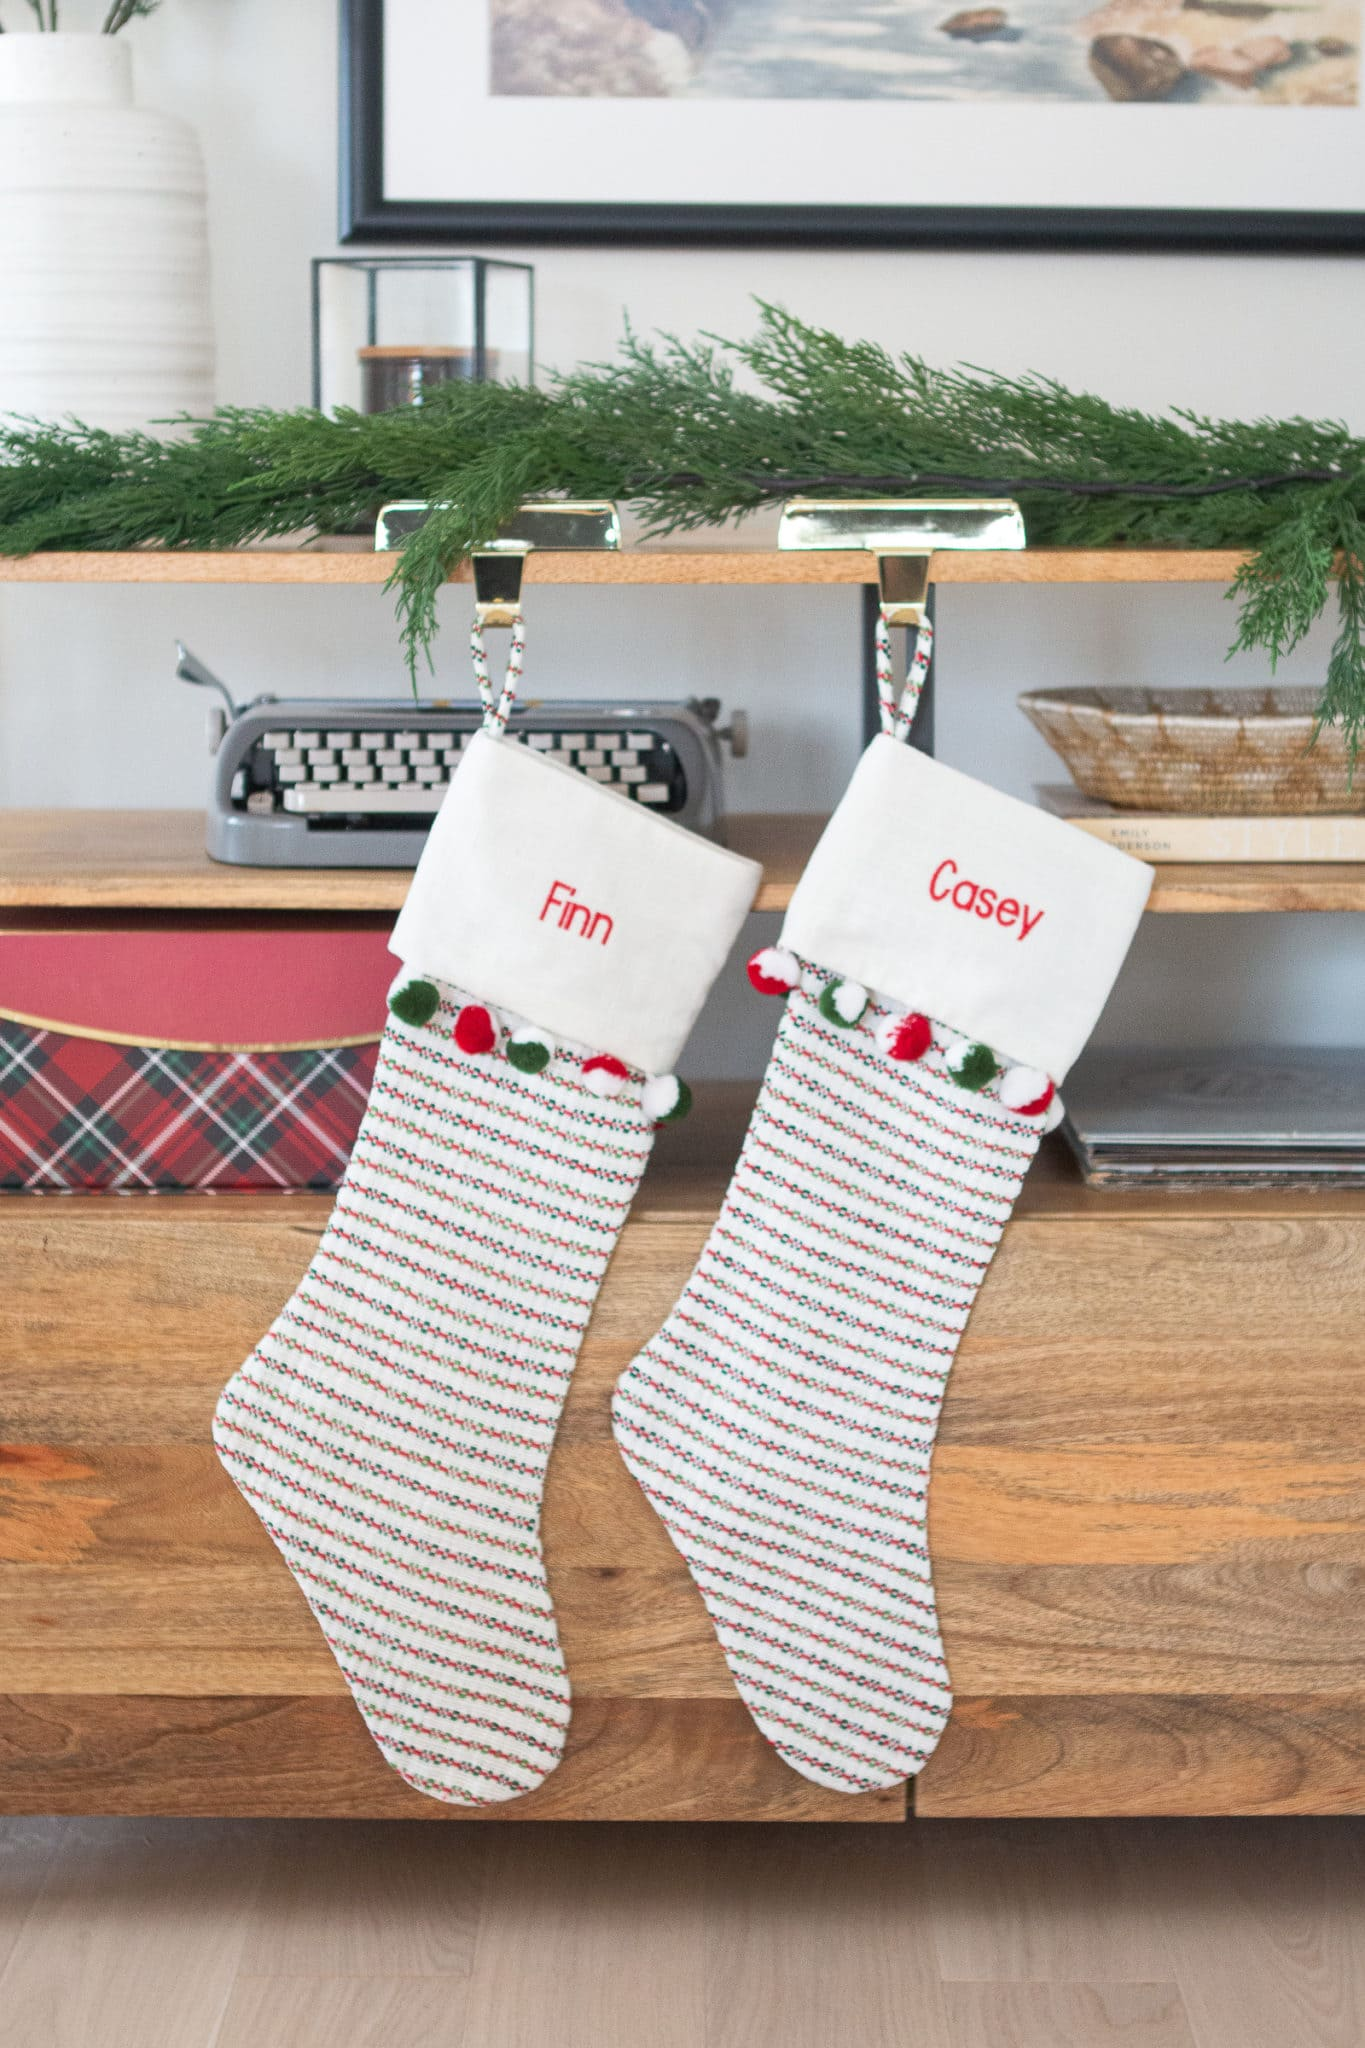 Crate and barrel stockings